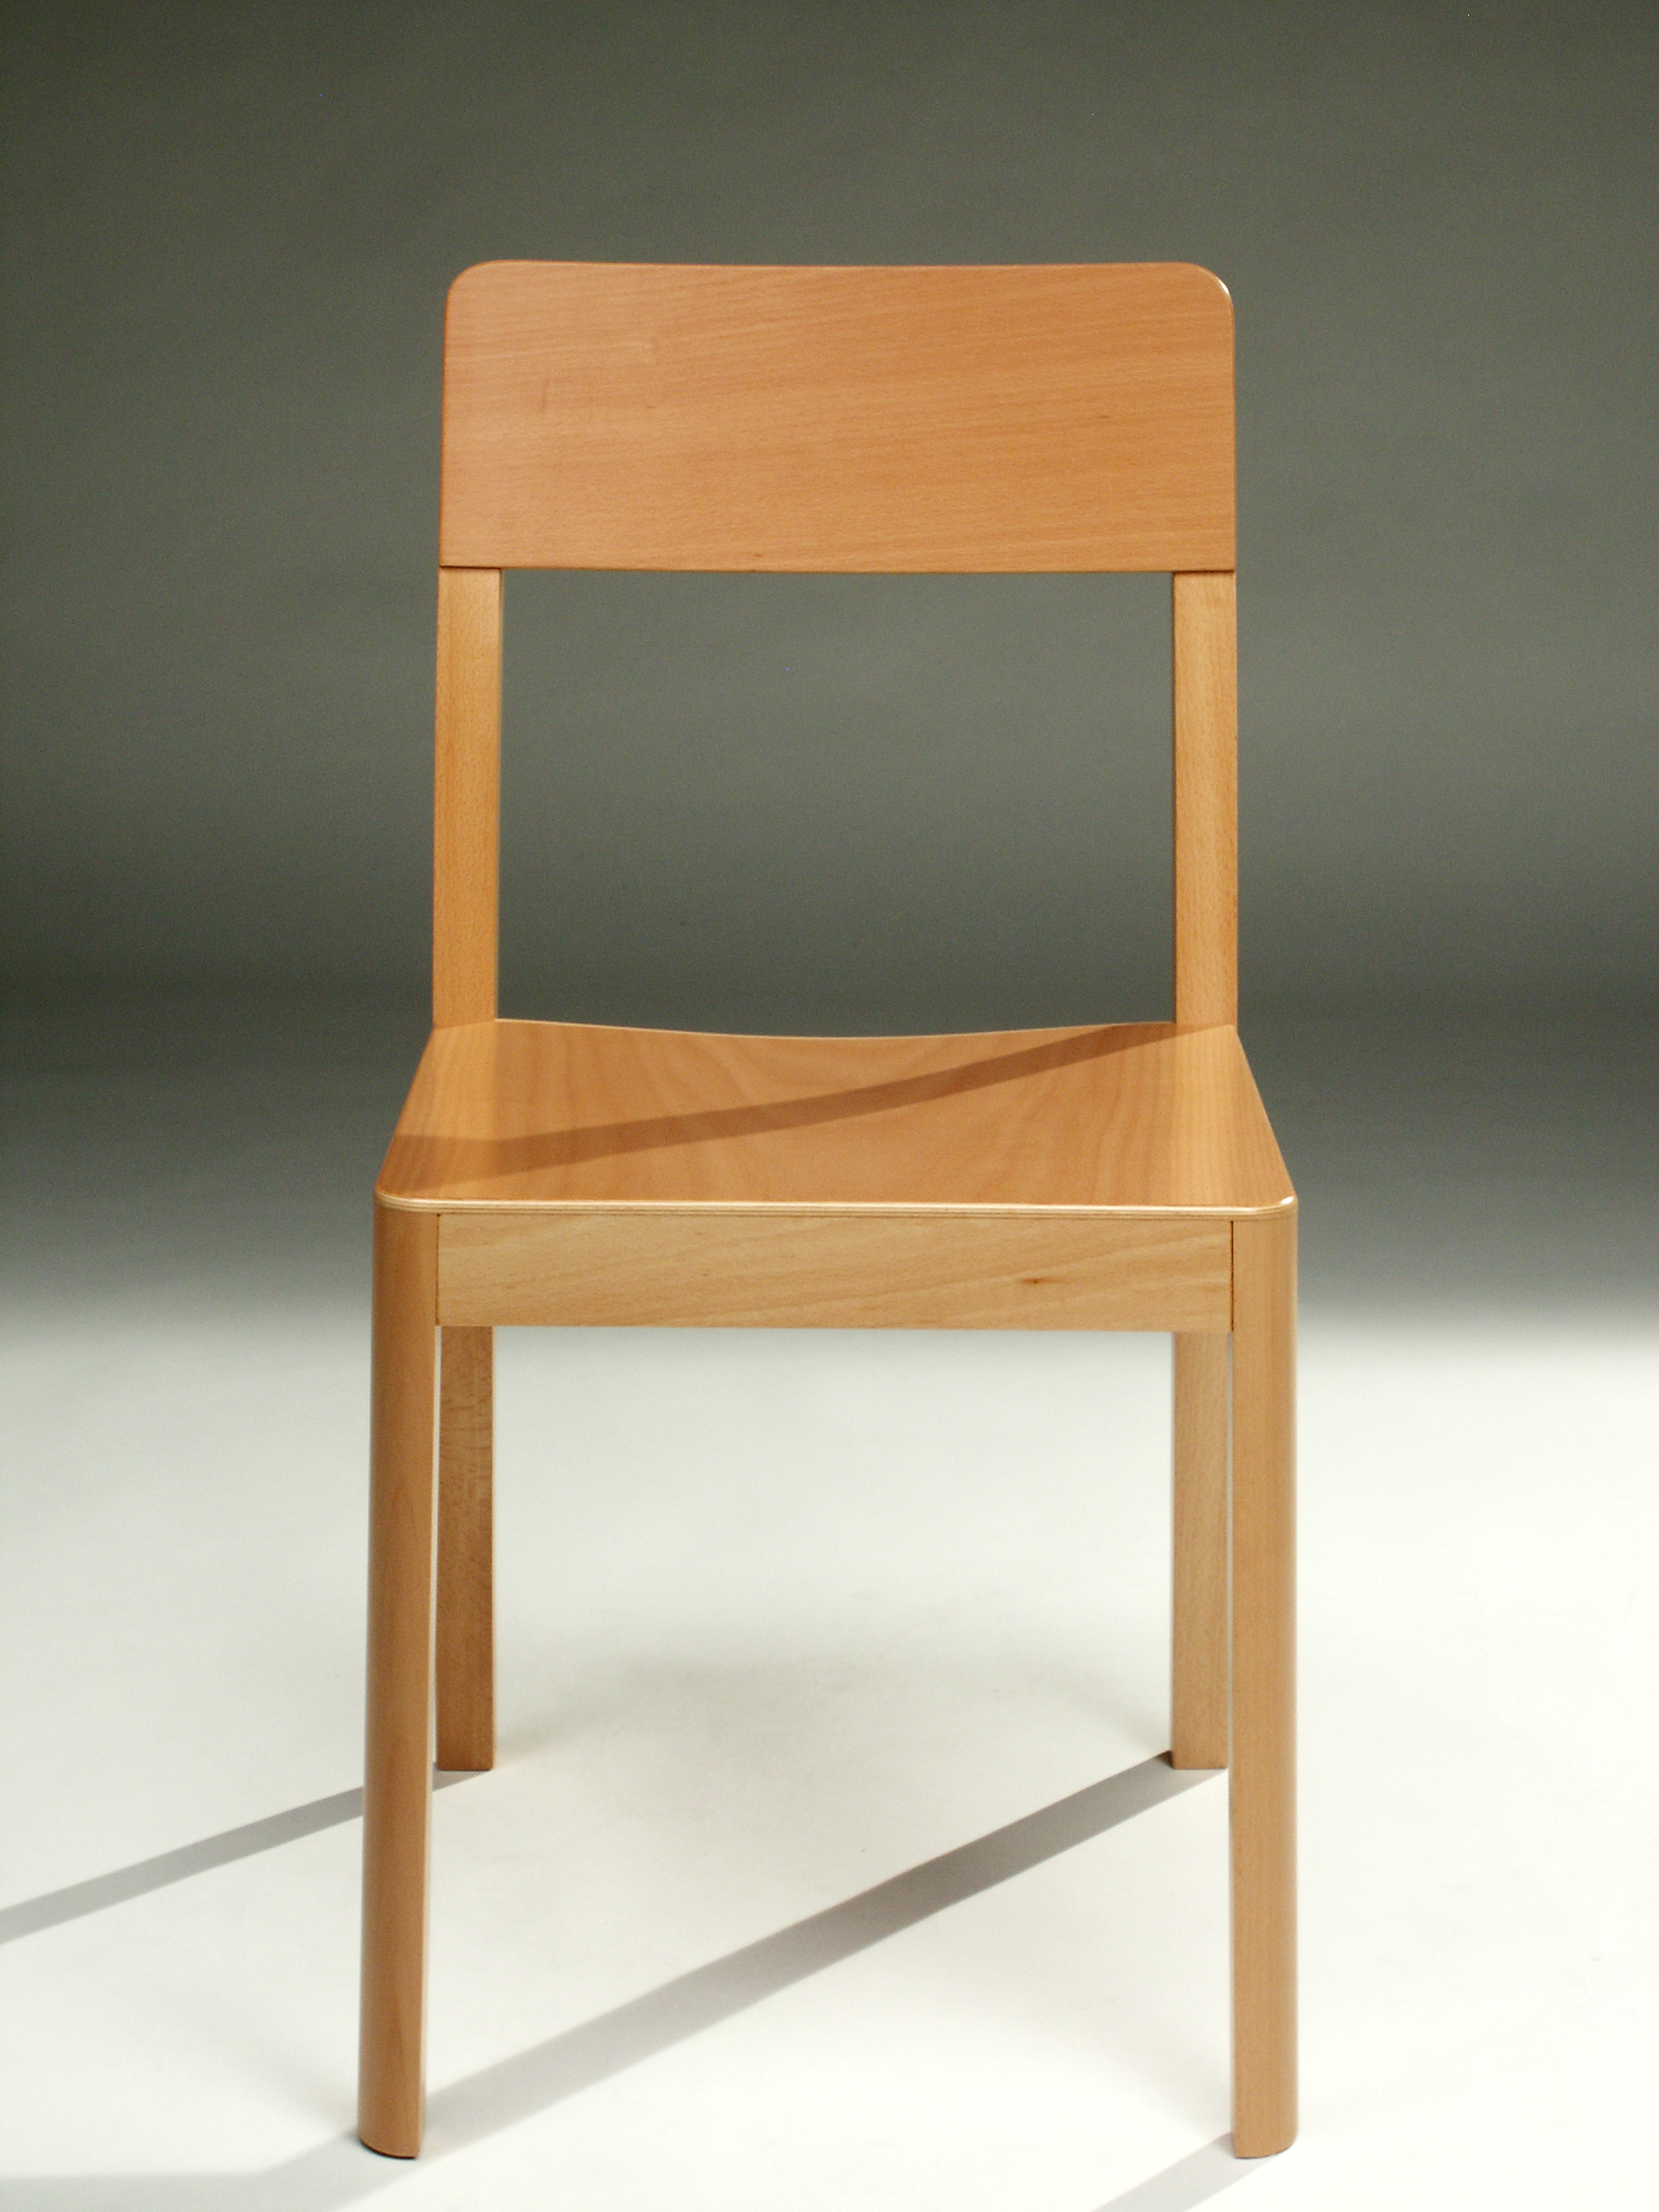 TheHome_Chair_photos_woodenchair_4choosen_04.jpg